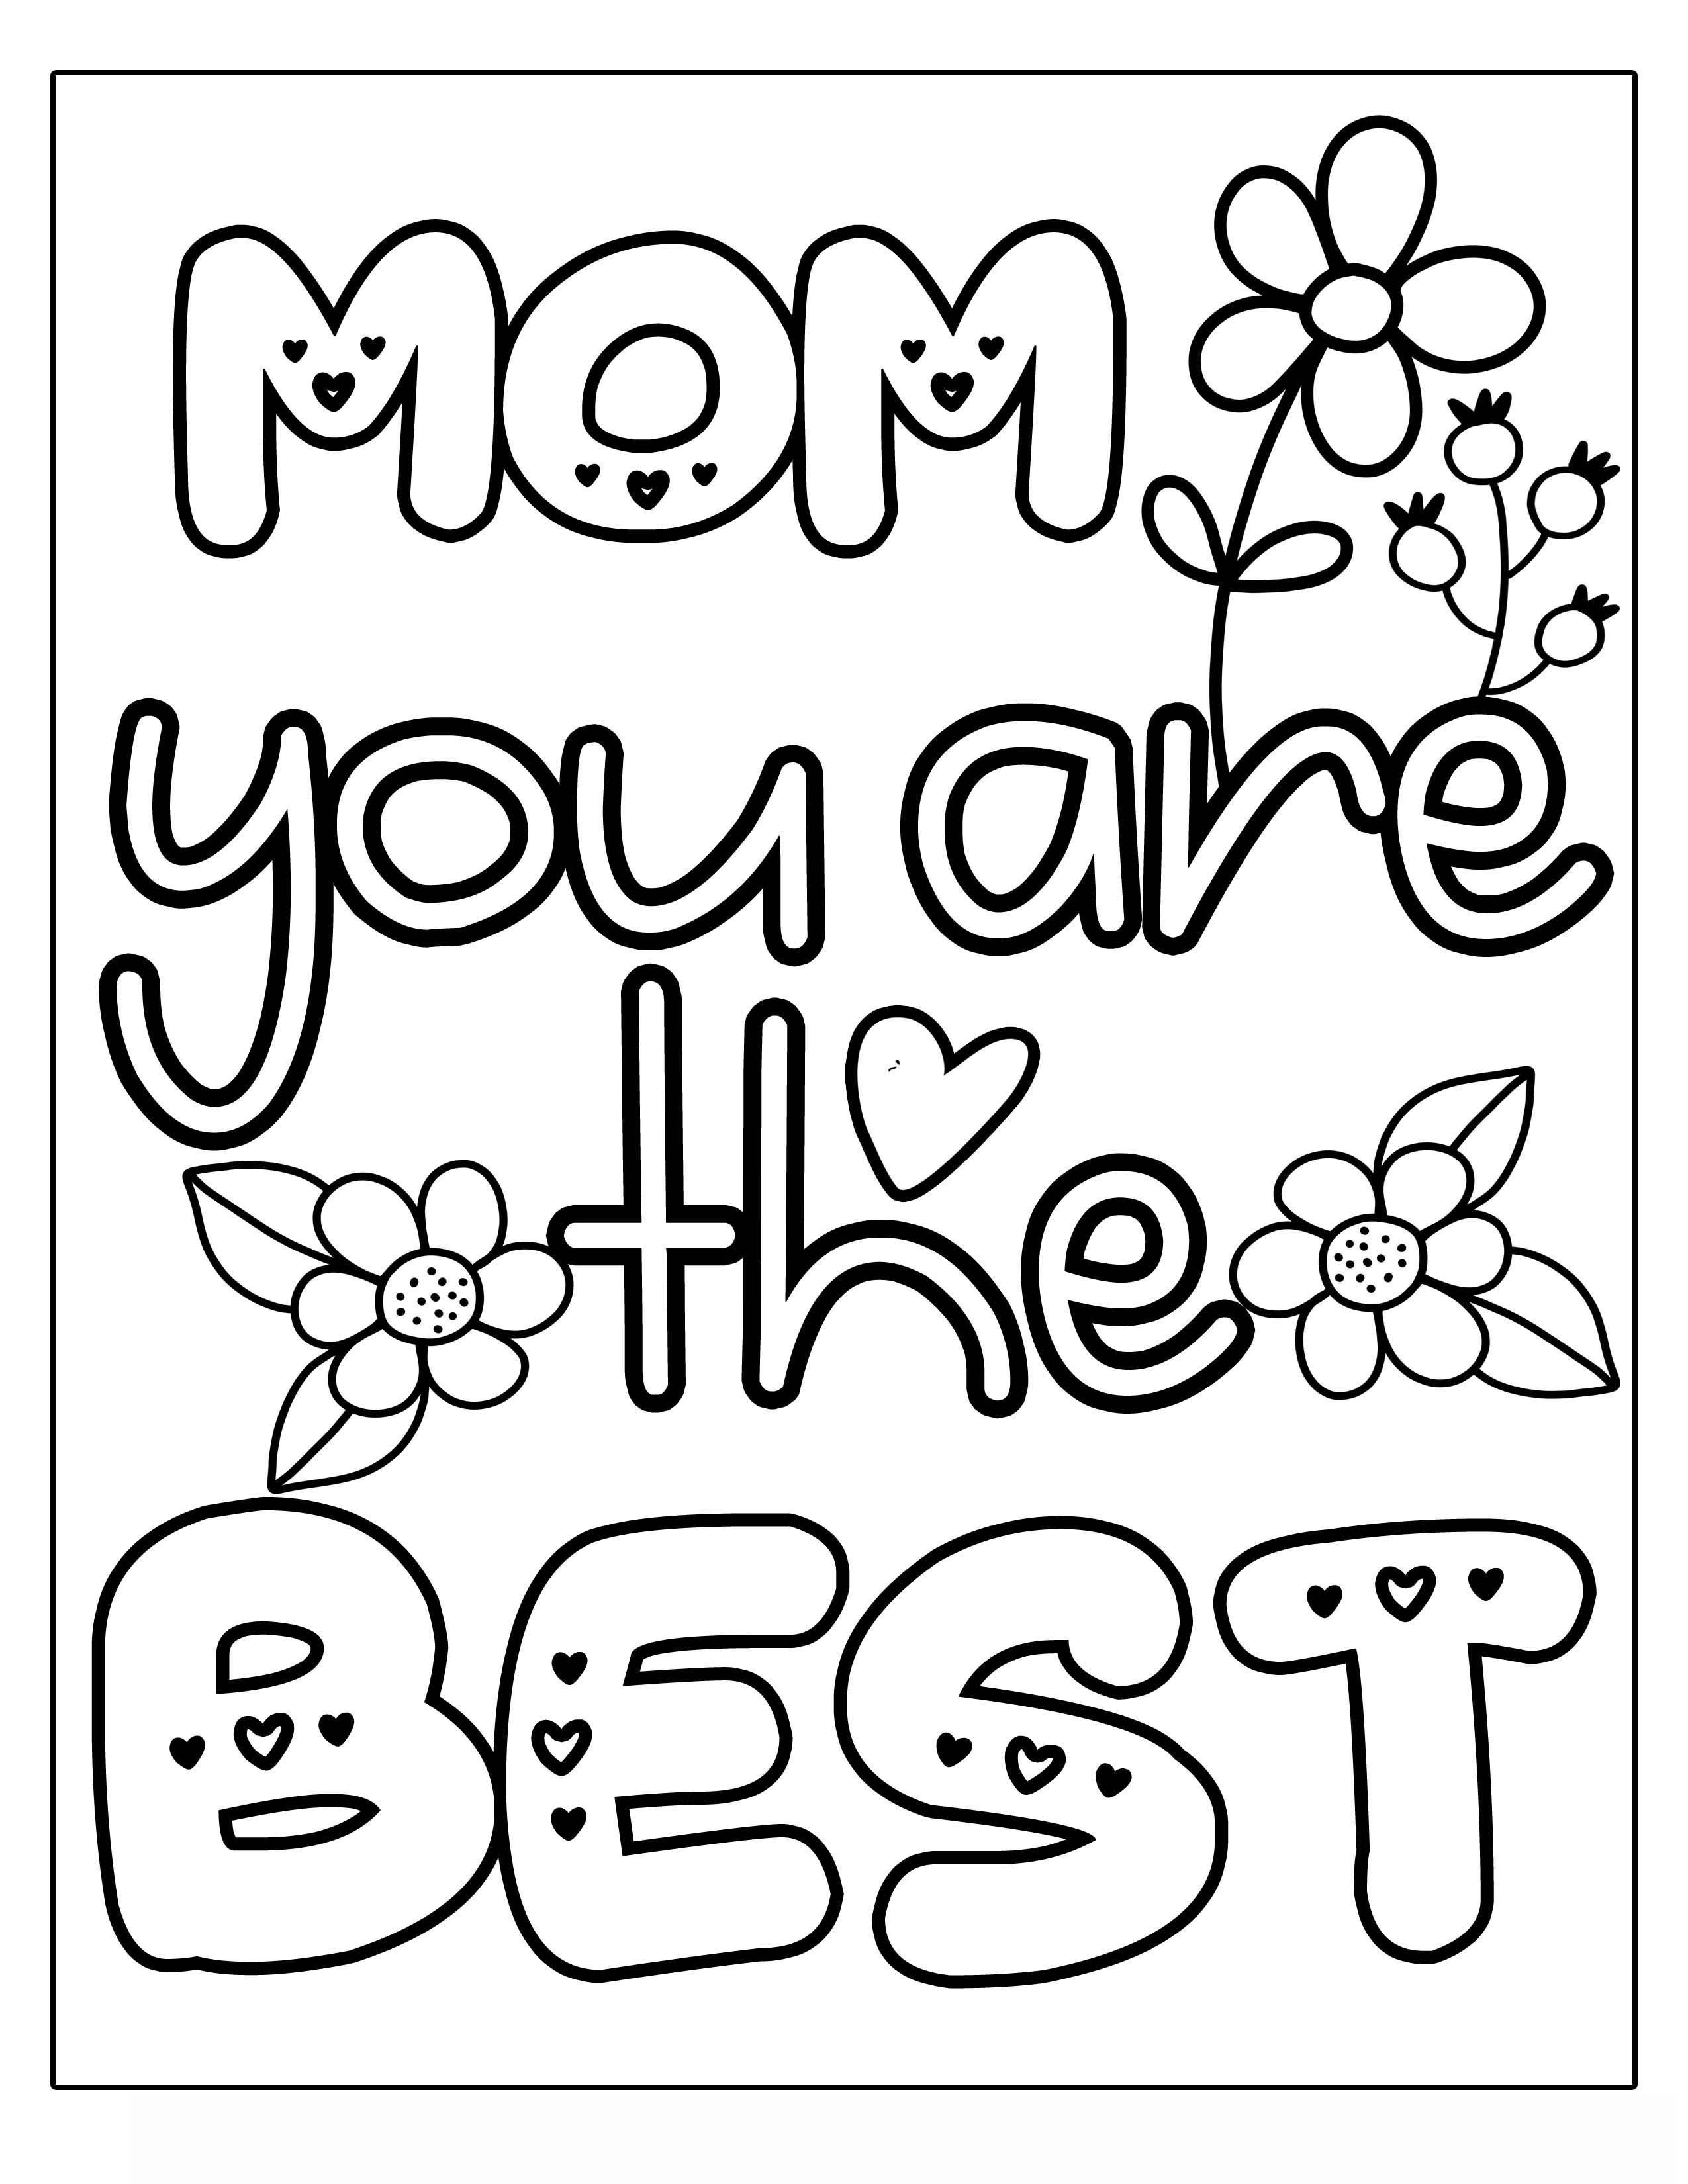 YOU ARE THE BEST MOM MOTHER'S DAY flower with vines and frills Clipart Coloring Pages for Kids Adults Art Activities Line Art